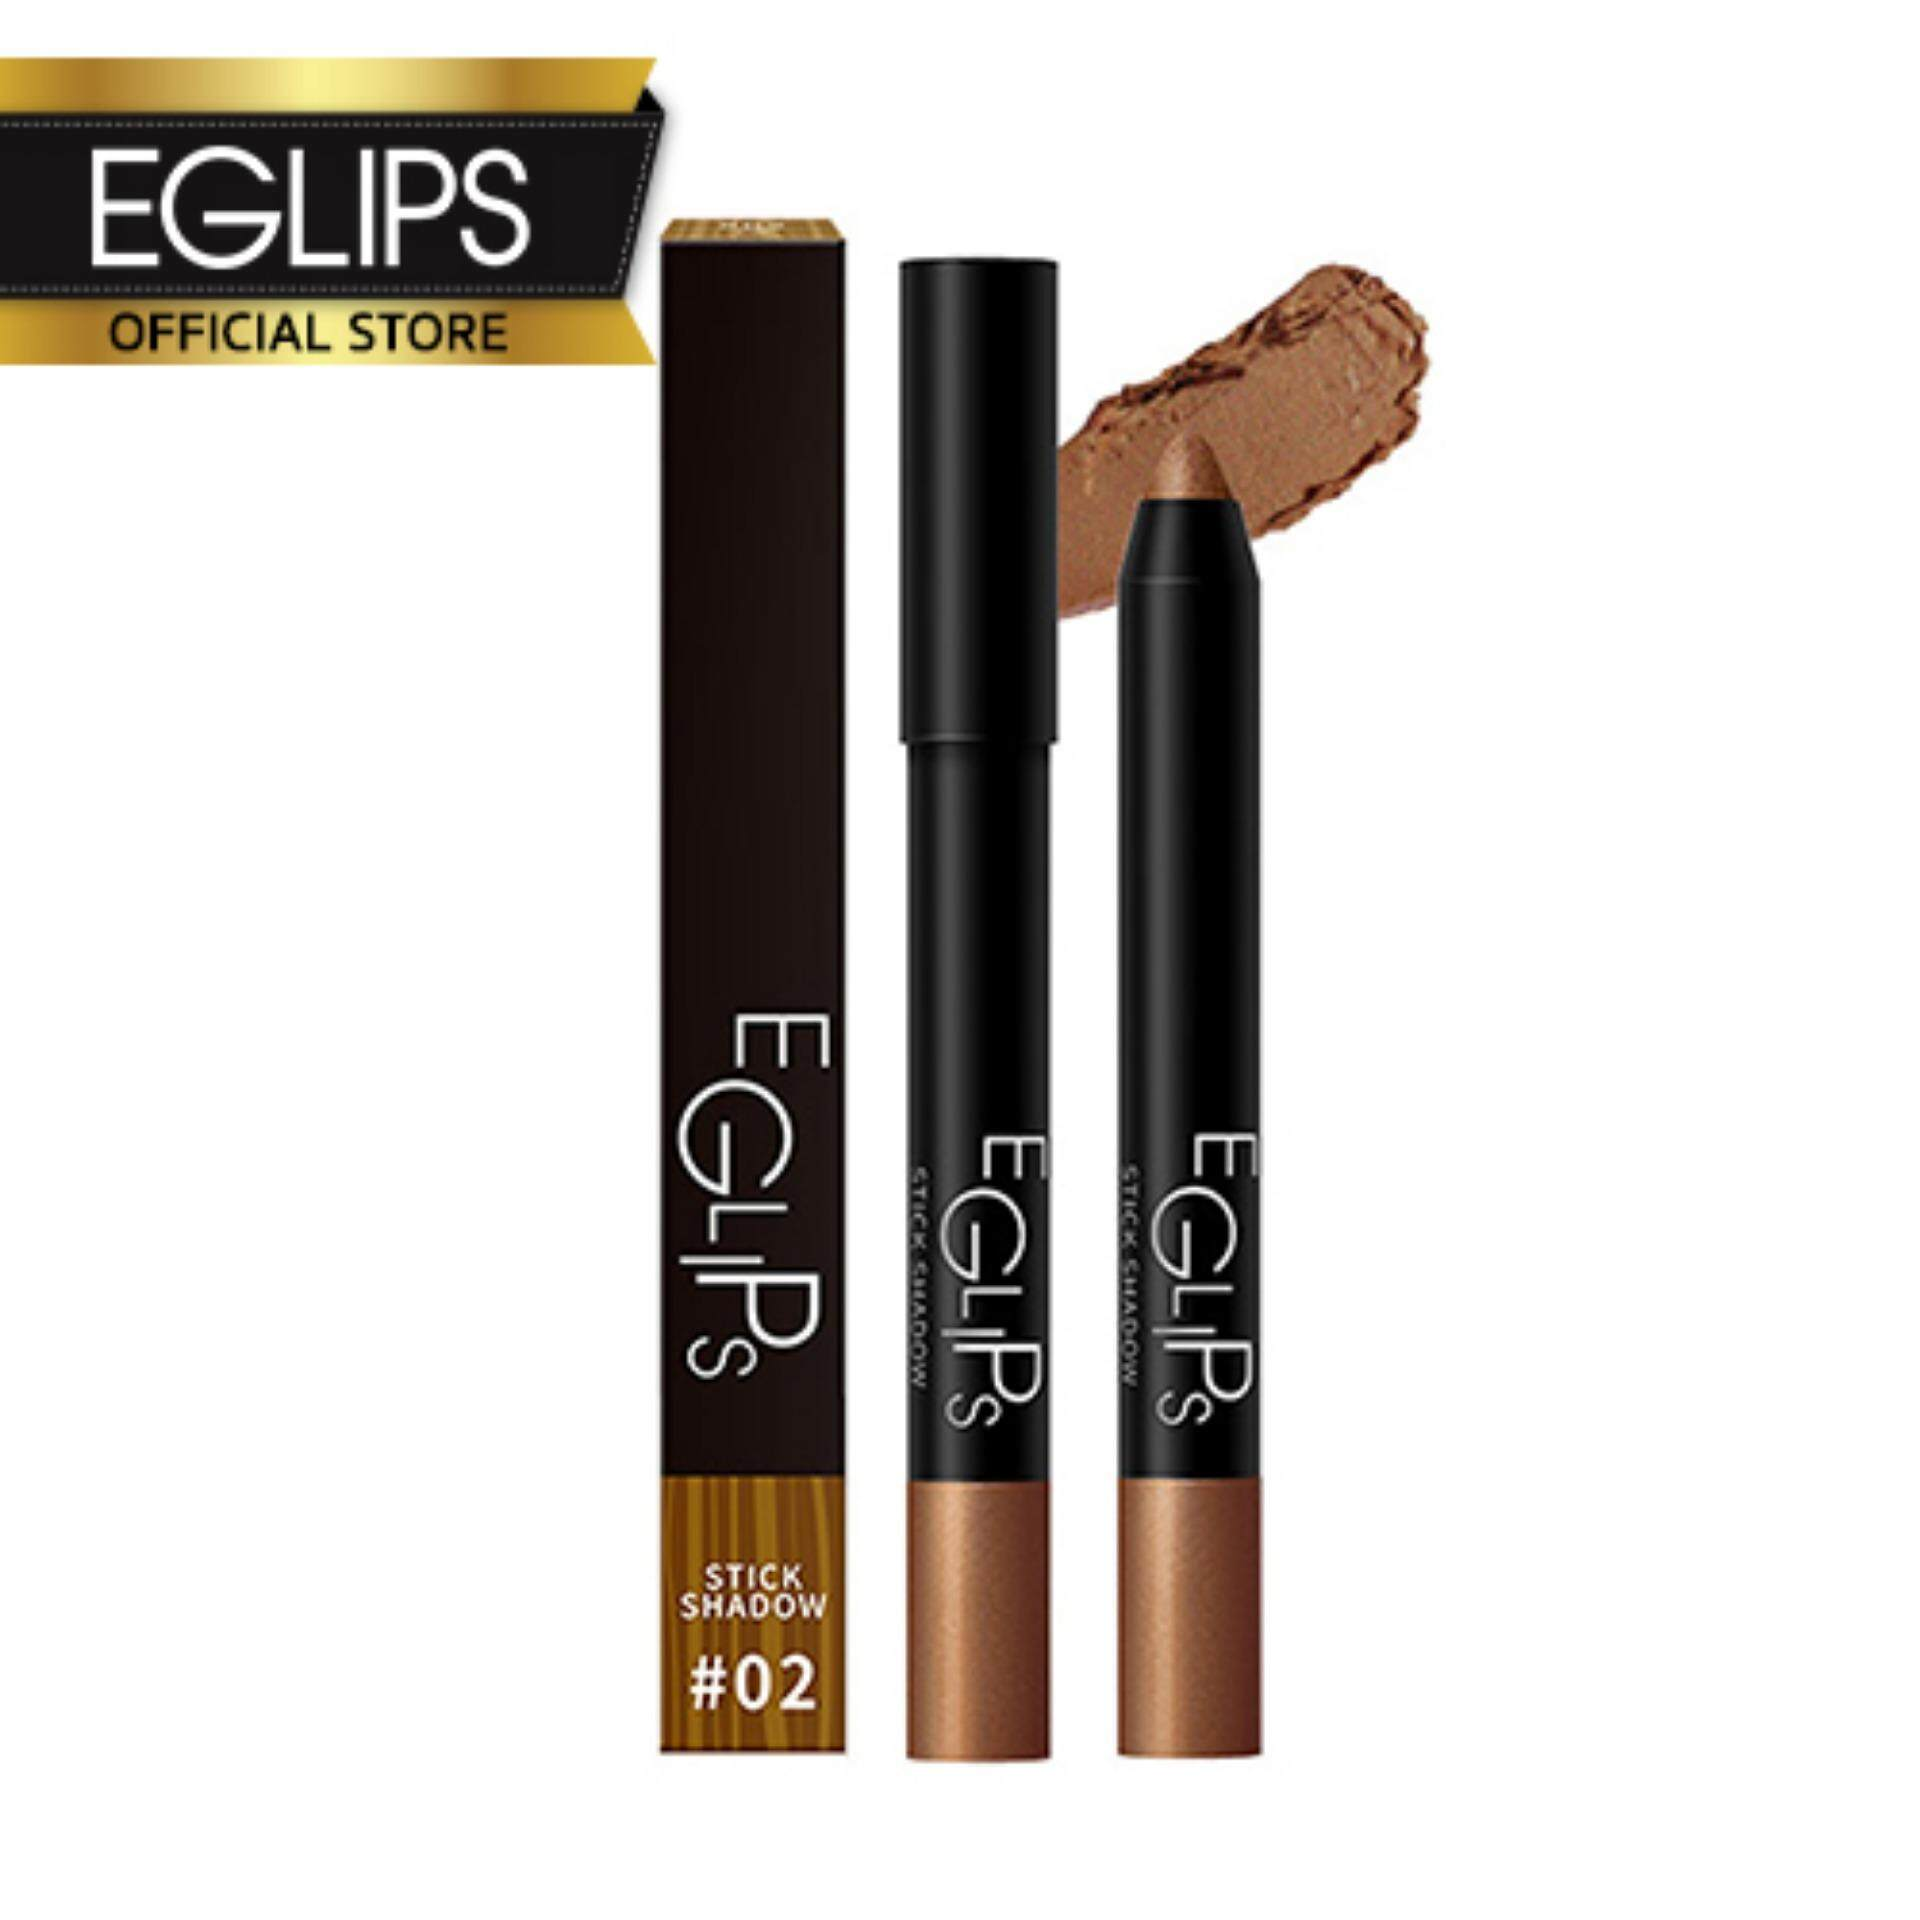 Eglips Stick Shadow - 02 Teak